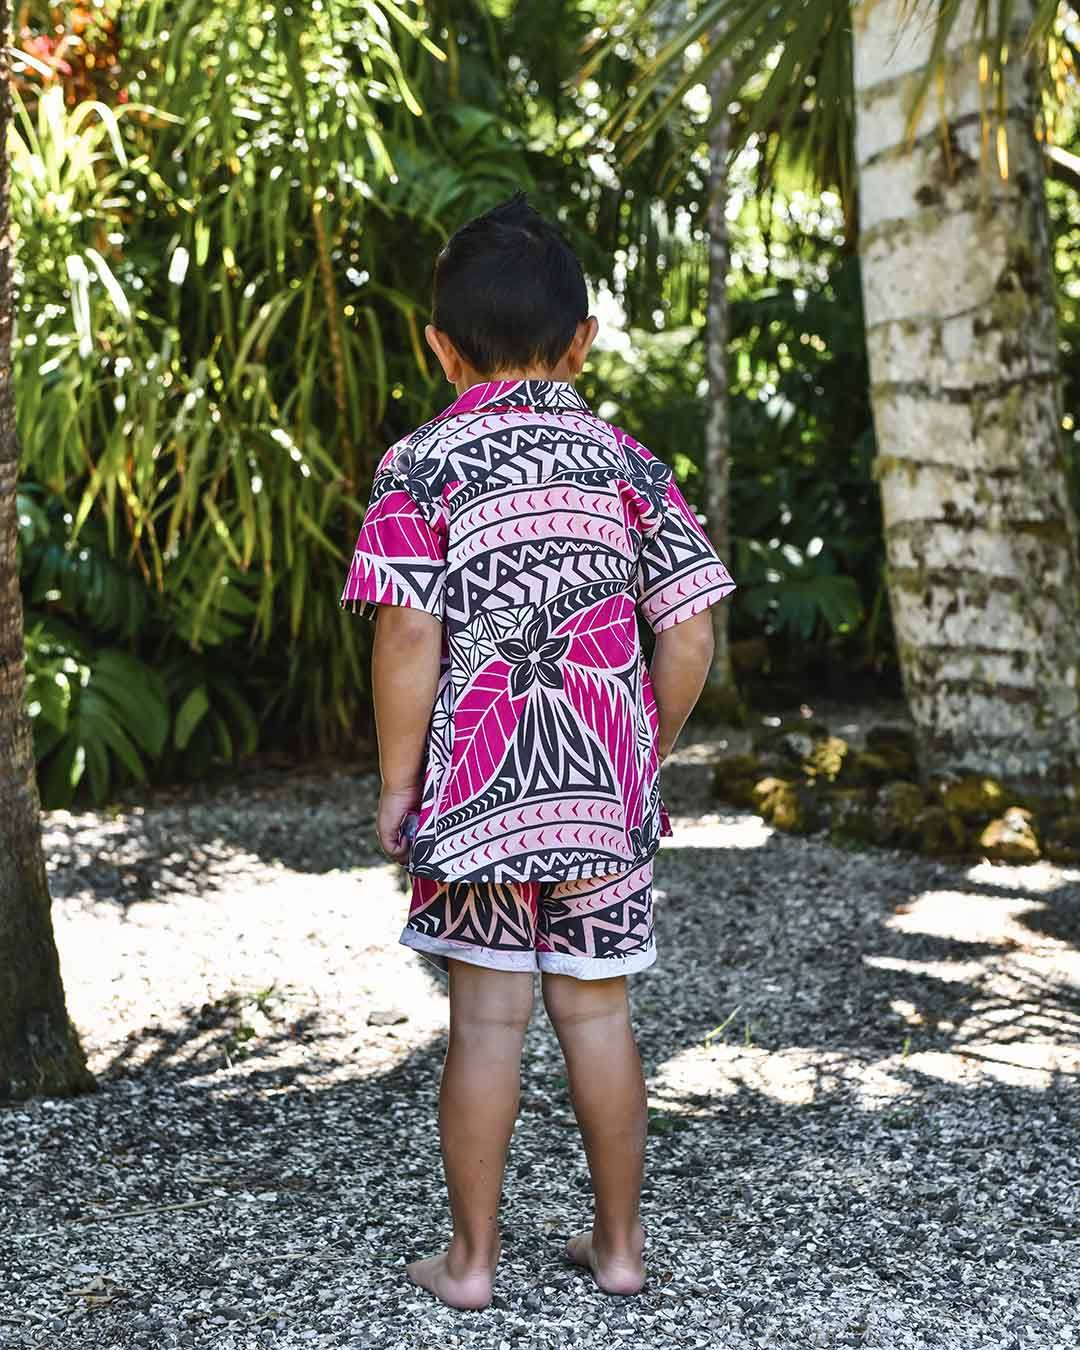 Kanoa Kids Short Sleeve Shirt - Moana Sunset